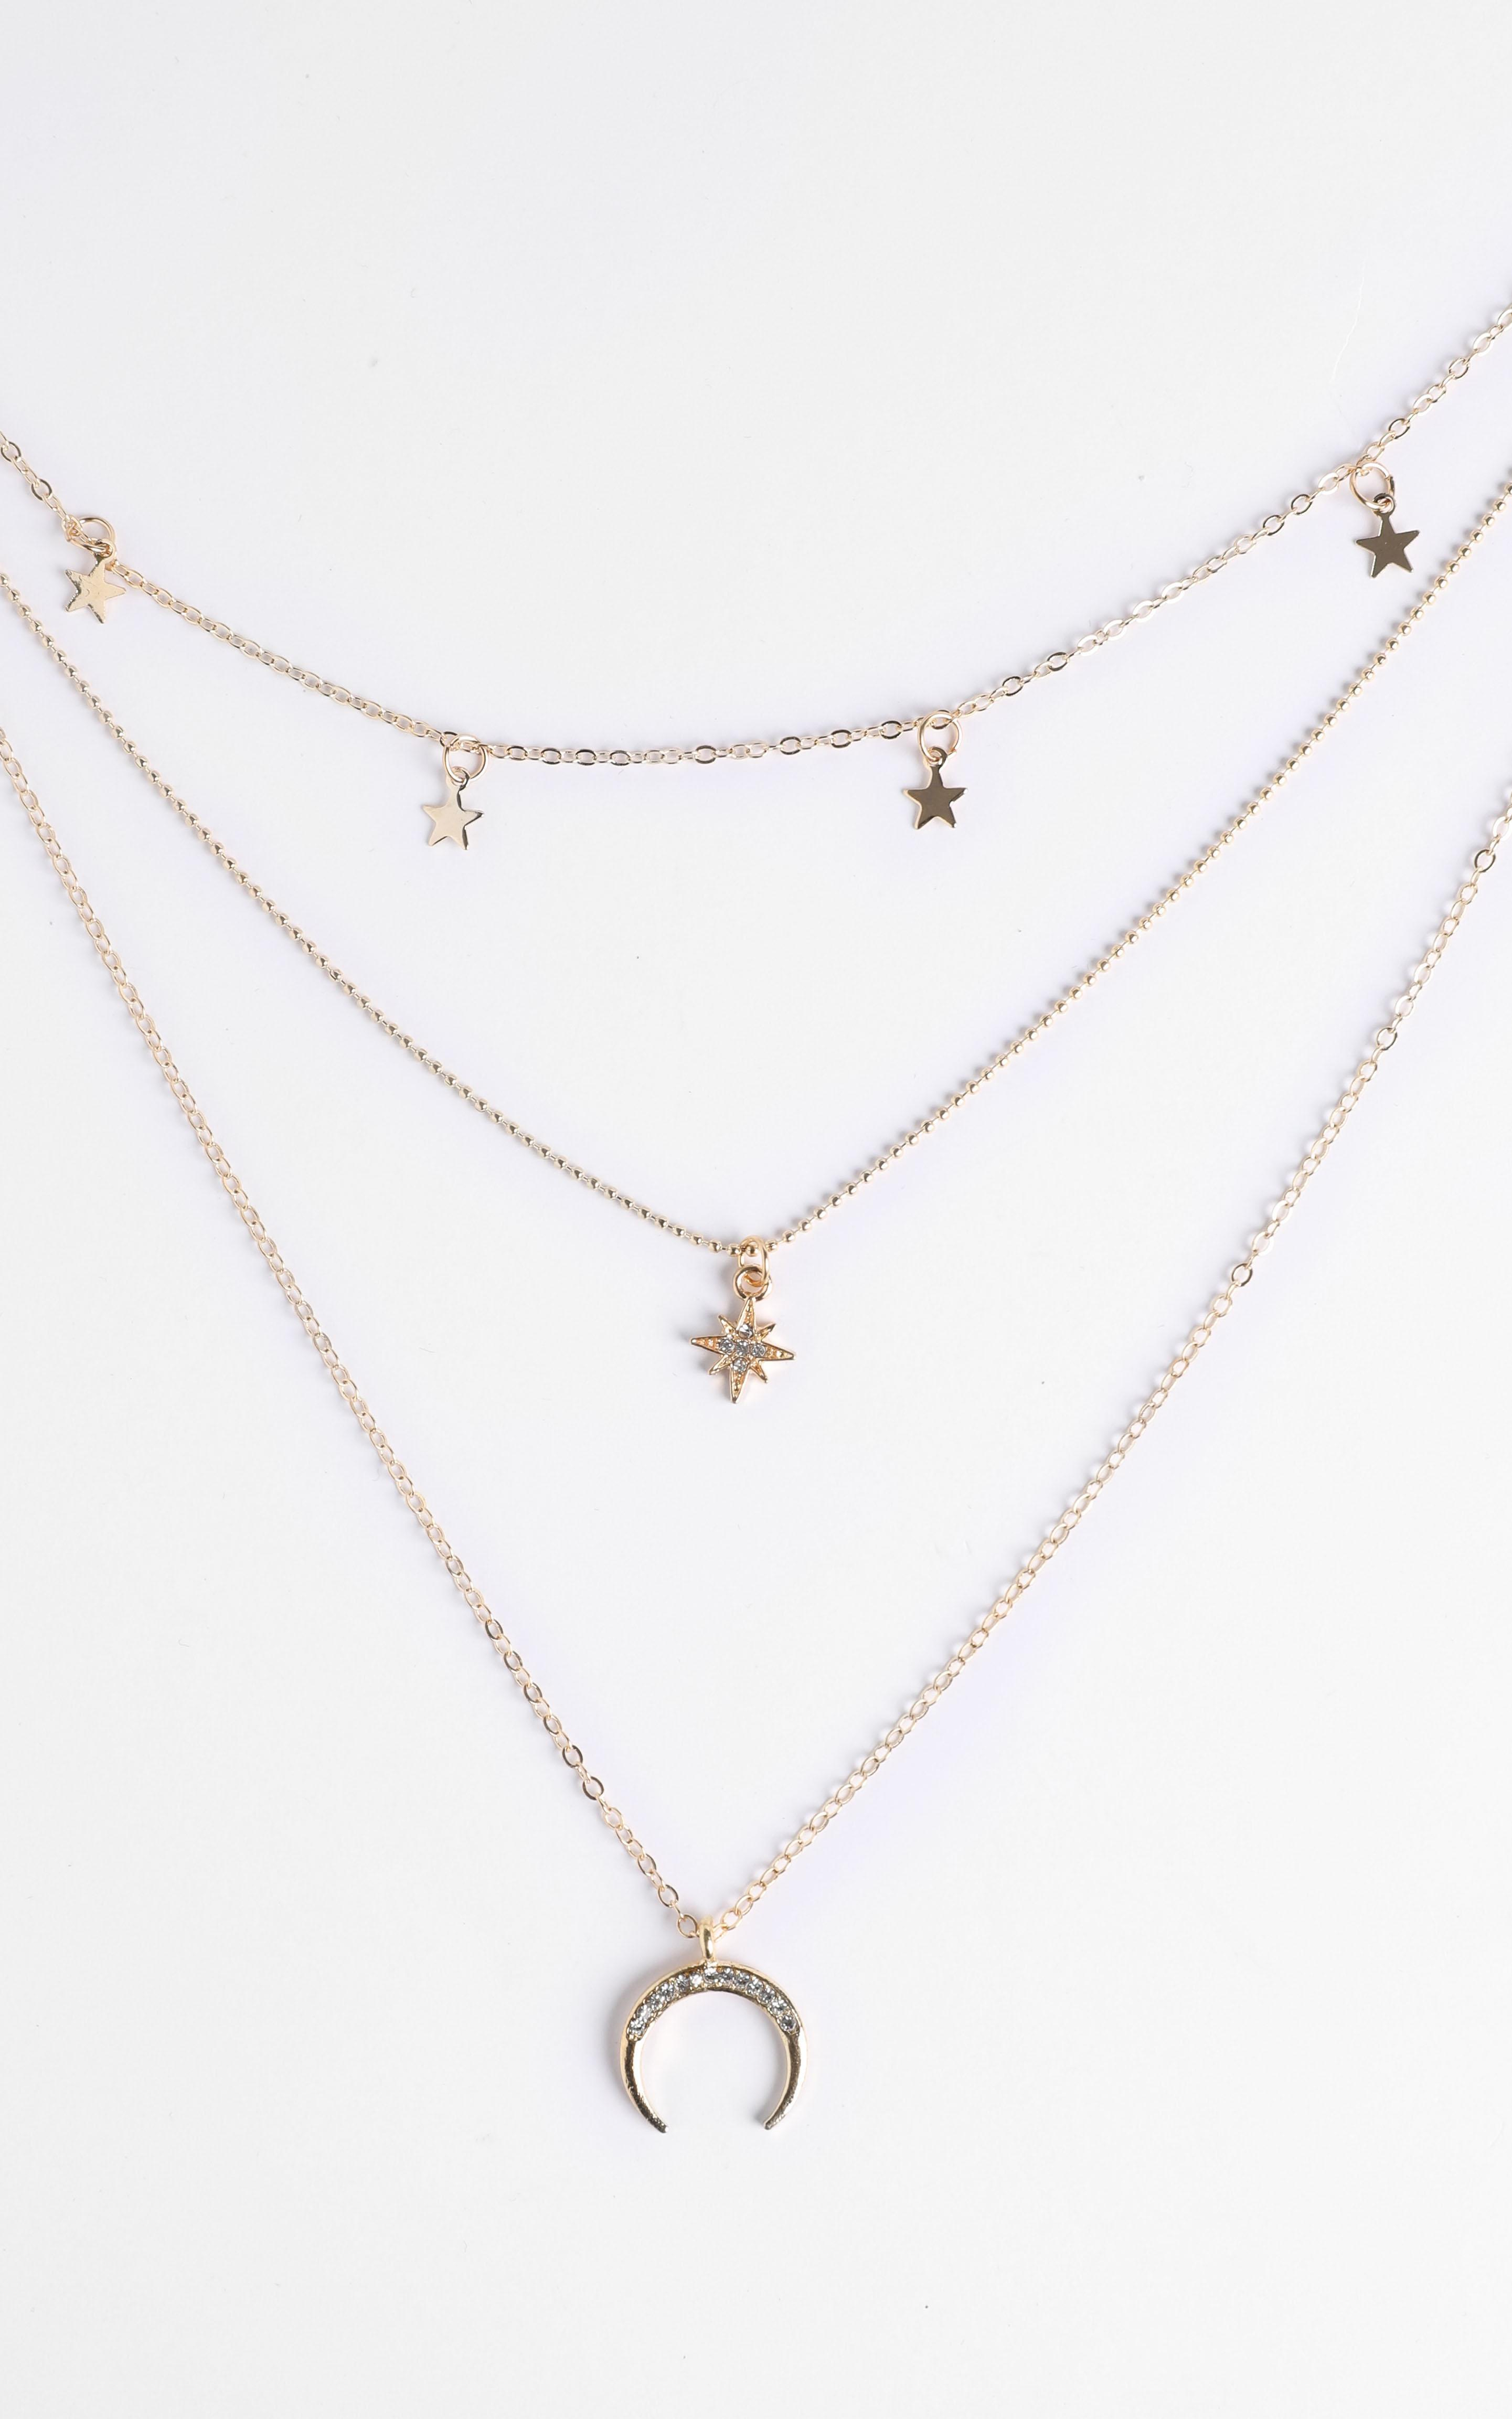 Alissa Star Layered Necklace in Gold, , hi-res image number null